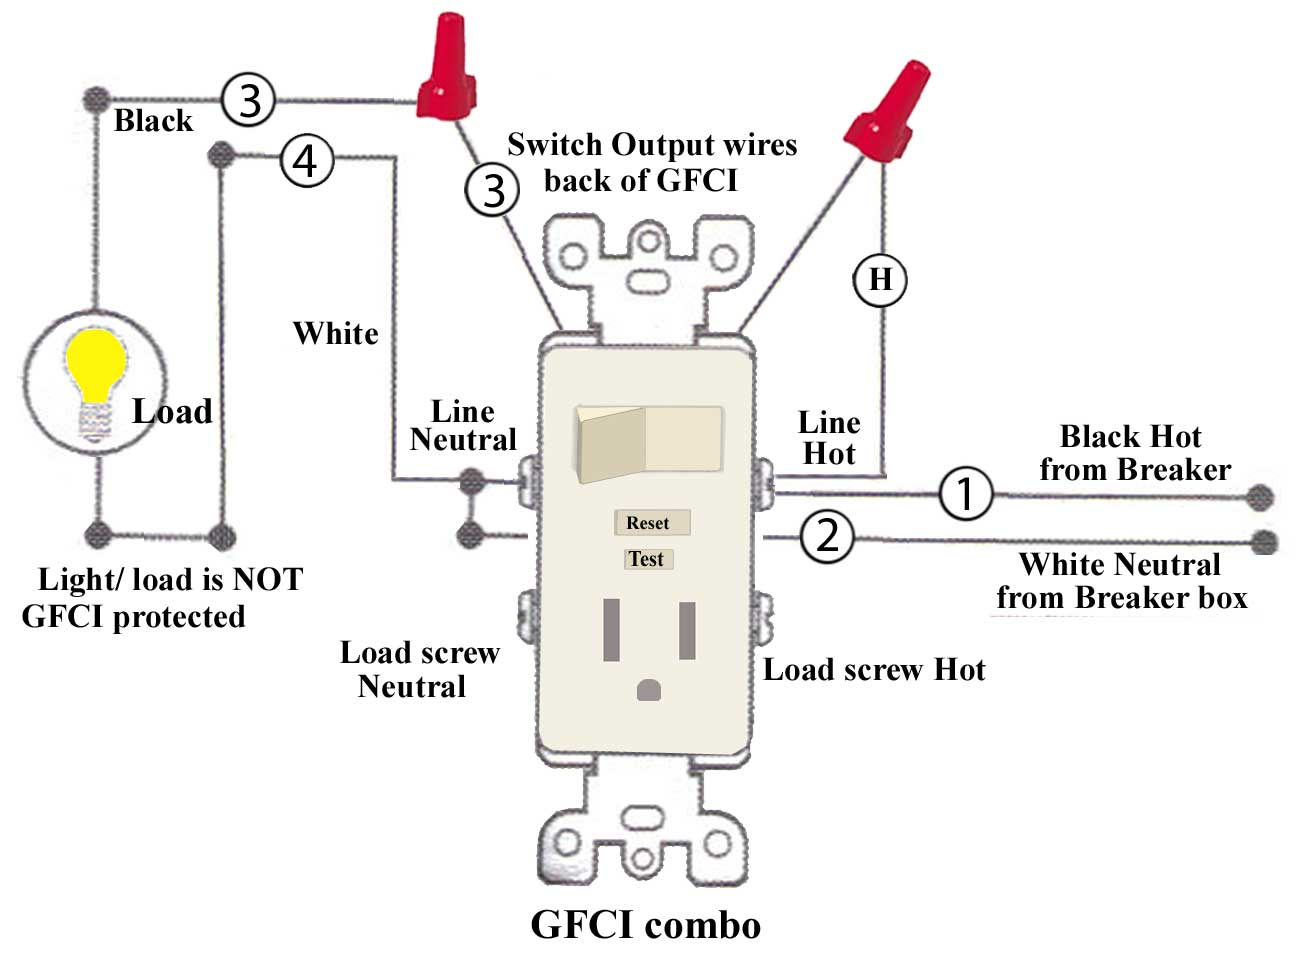 GFCI combo wiring 4 how to install and troubleshoot gfci leviton outlet wiring diagram at mifinder.co